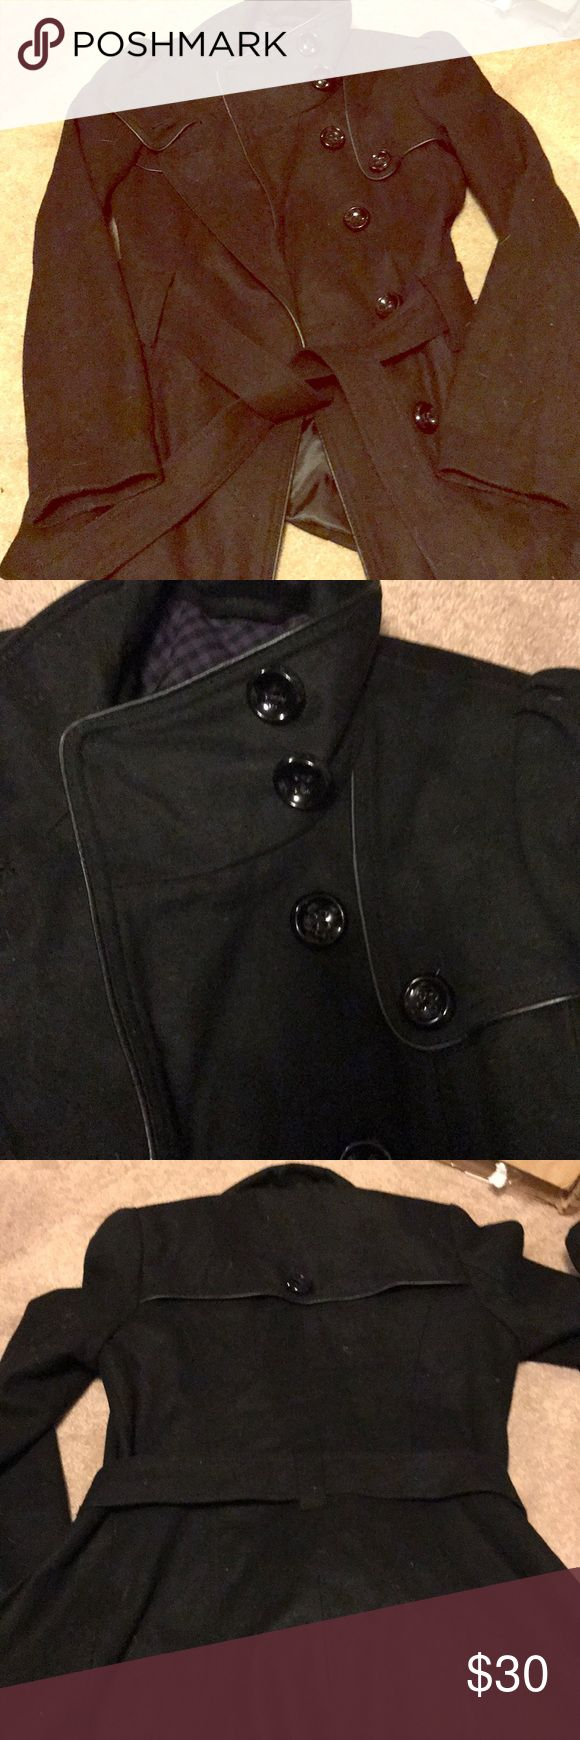 Black pea coat by Steve Madden. Black pea coat in perfect condition size small. Button accents on collar and back wrap around tie. Steve Madden Jackets & Coats Pea Coats